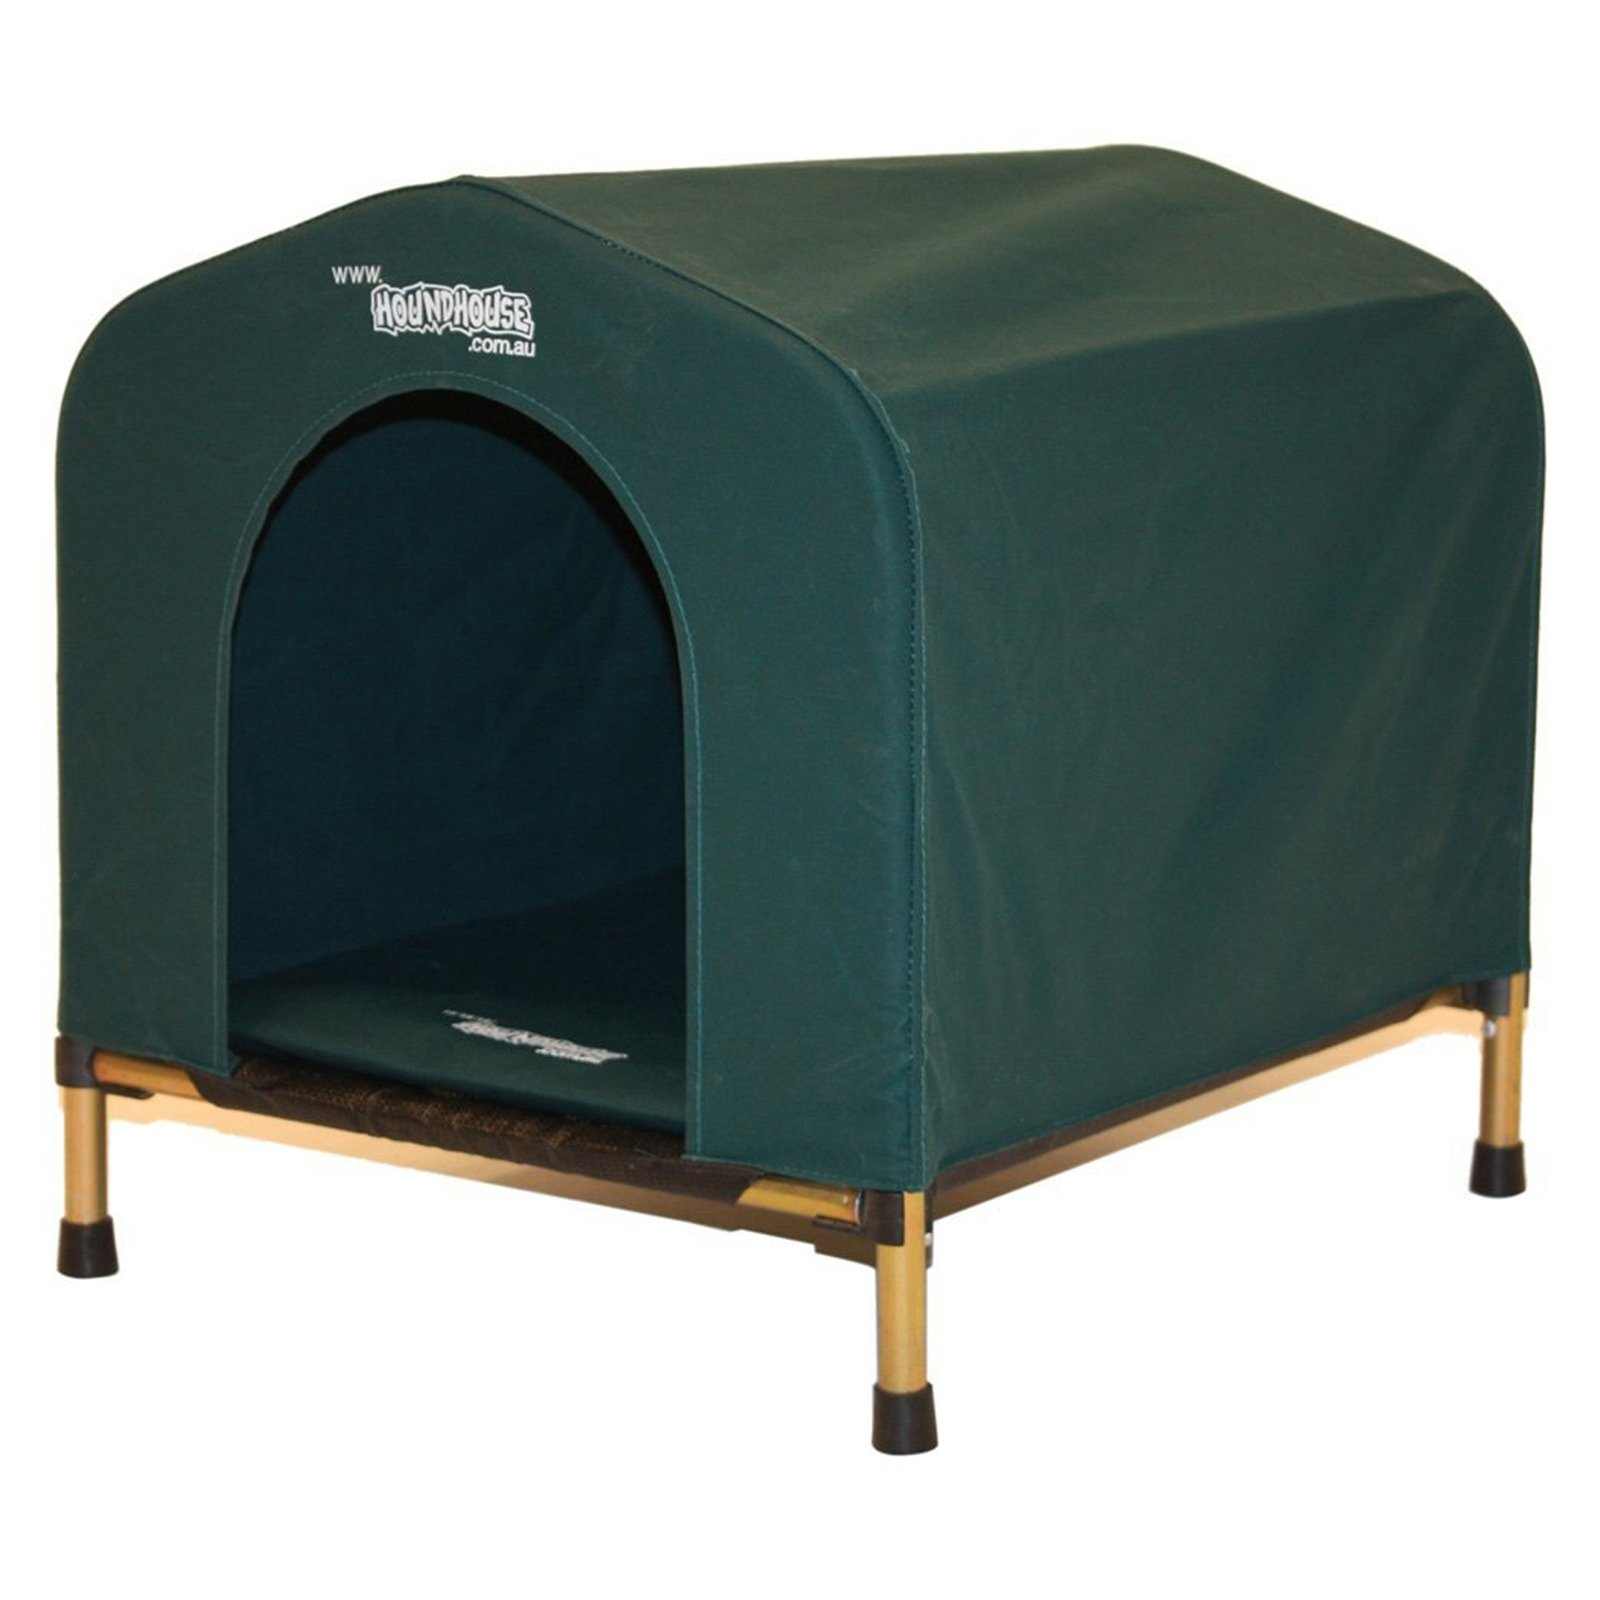 HoundHouse Portable Collapsable Pet Kennel Shelter Green - XLarge